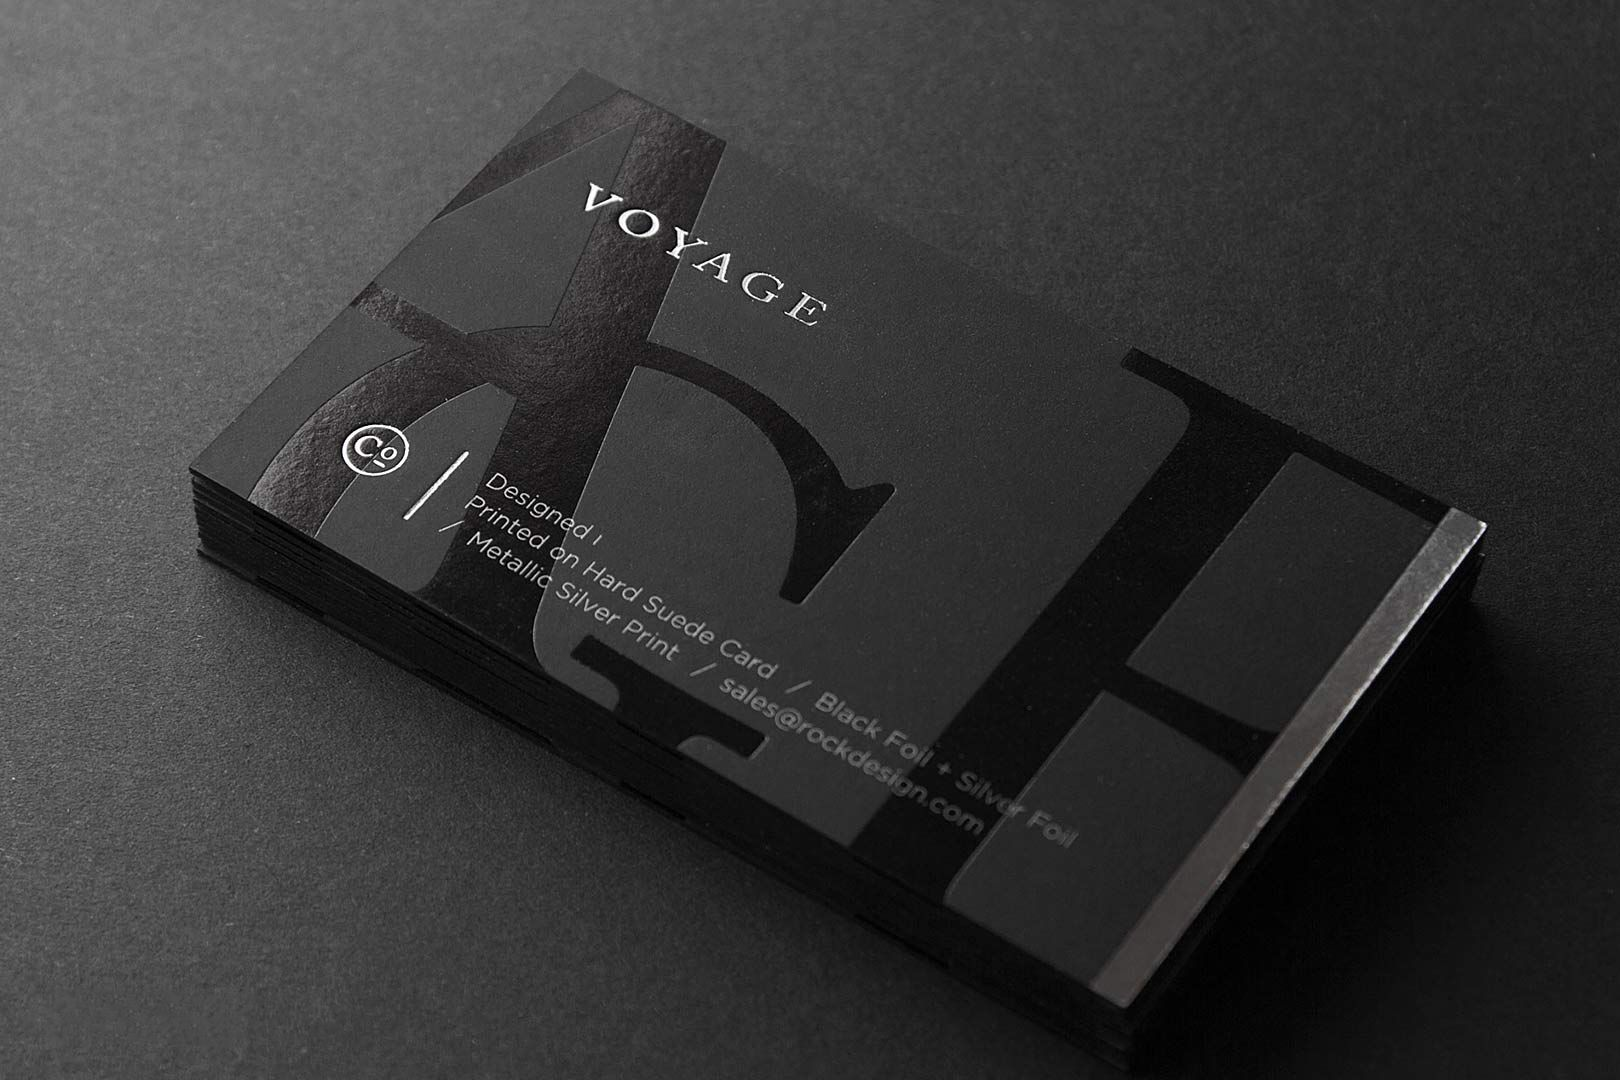 Hot foil business card color white black silver httpsbce hot foil business card color white black silver httpswww reheart Choice Image